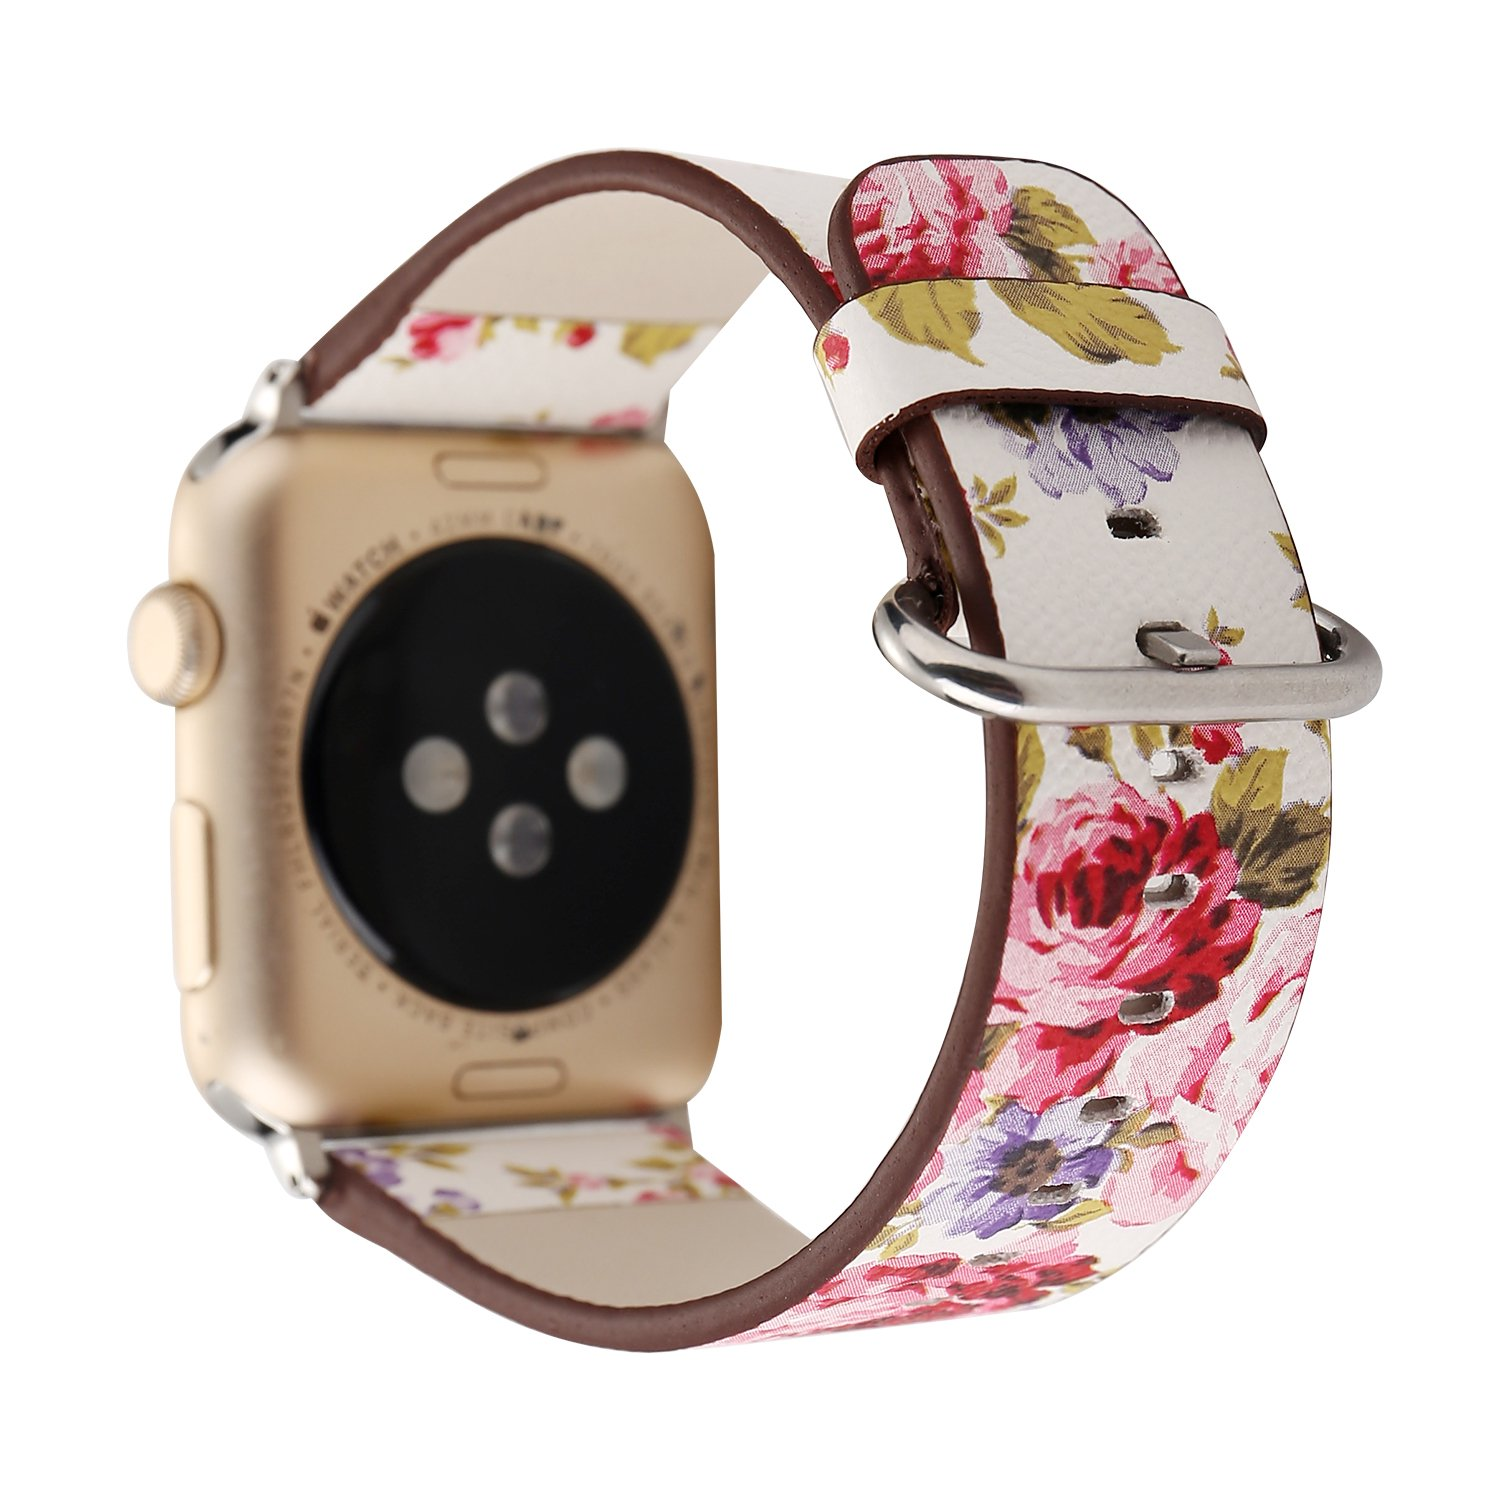 Flower Design Strap for iWatch,38mm 42mm Floral Pattern Printed Leather Wrist Band Apple Watch Link Bracelet for Apple Watch Smartwatch Fitness Tracker Series 3 2 1 Version (White+ Pink 38mm)